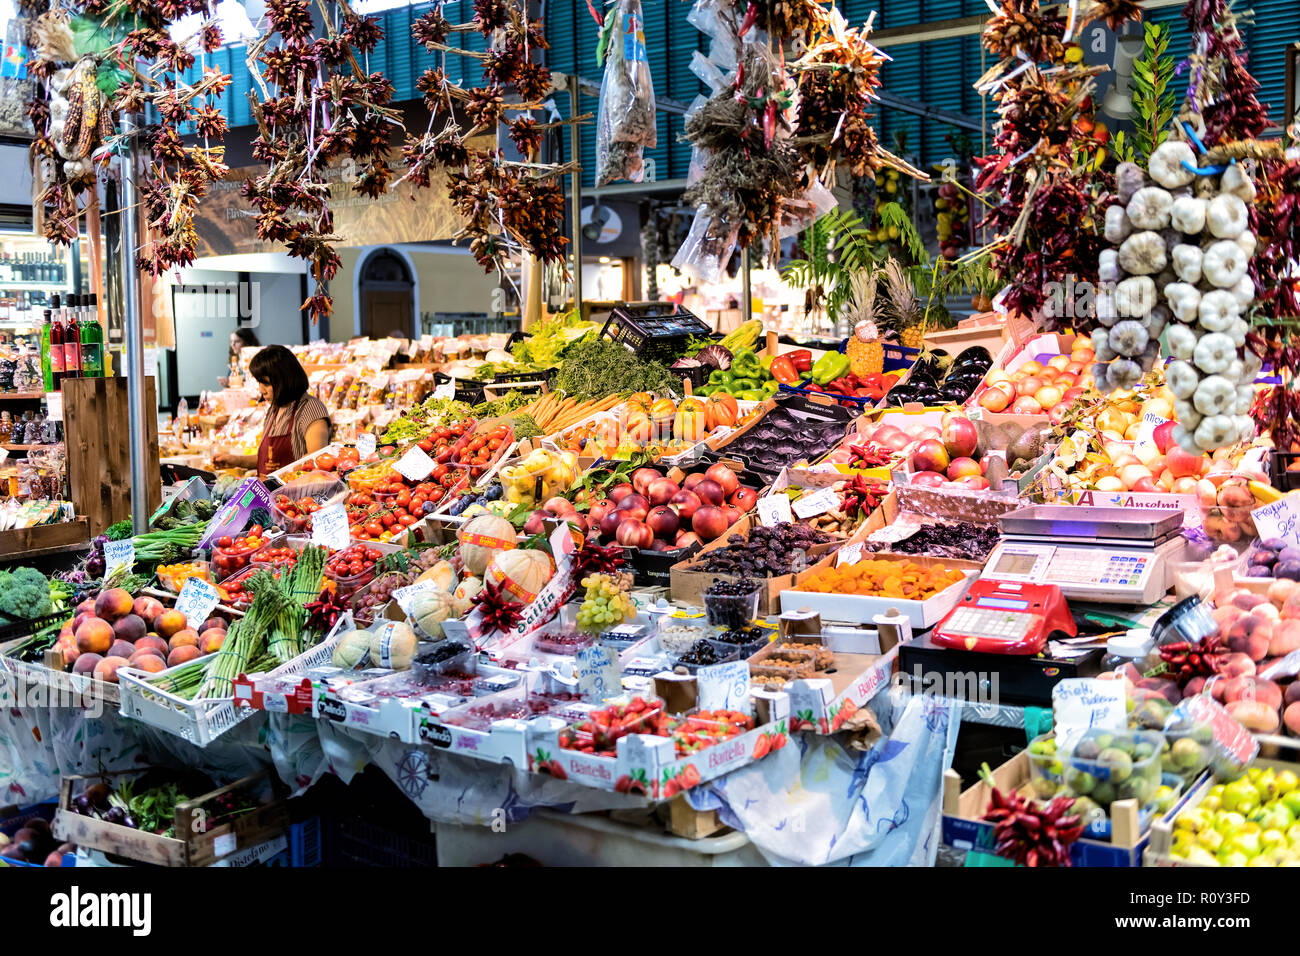 Florence, Italy - August 30, 2018: Firenze mercato centrale, central market with kiosk, stall, stand selling fresh farmers produce, fruit, vegetable o - Stock Image